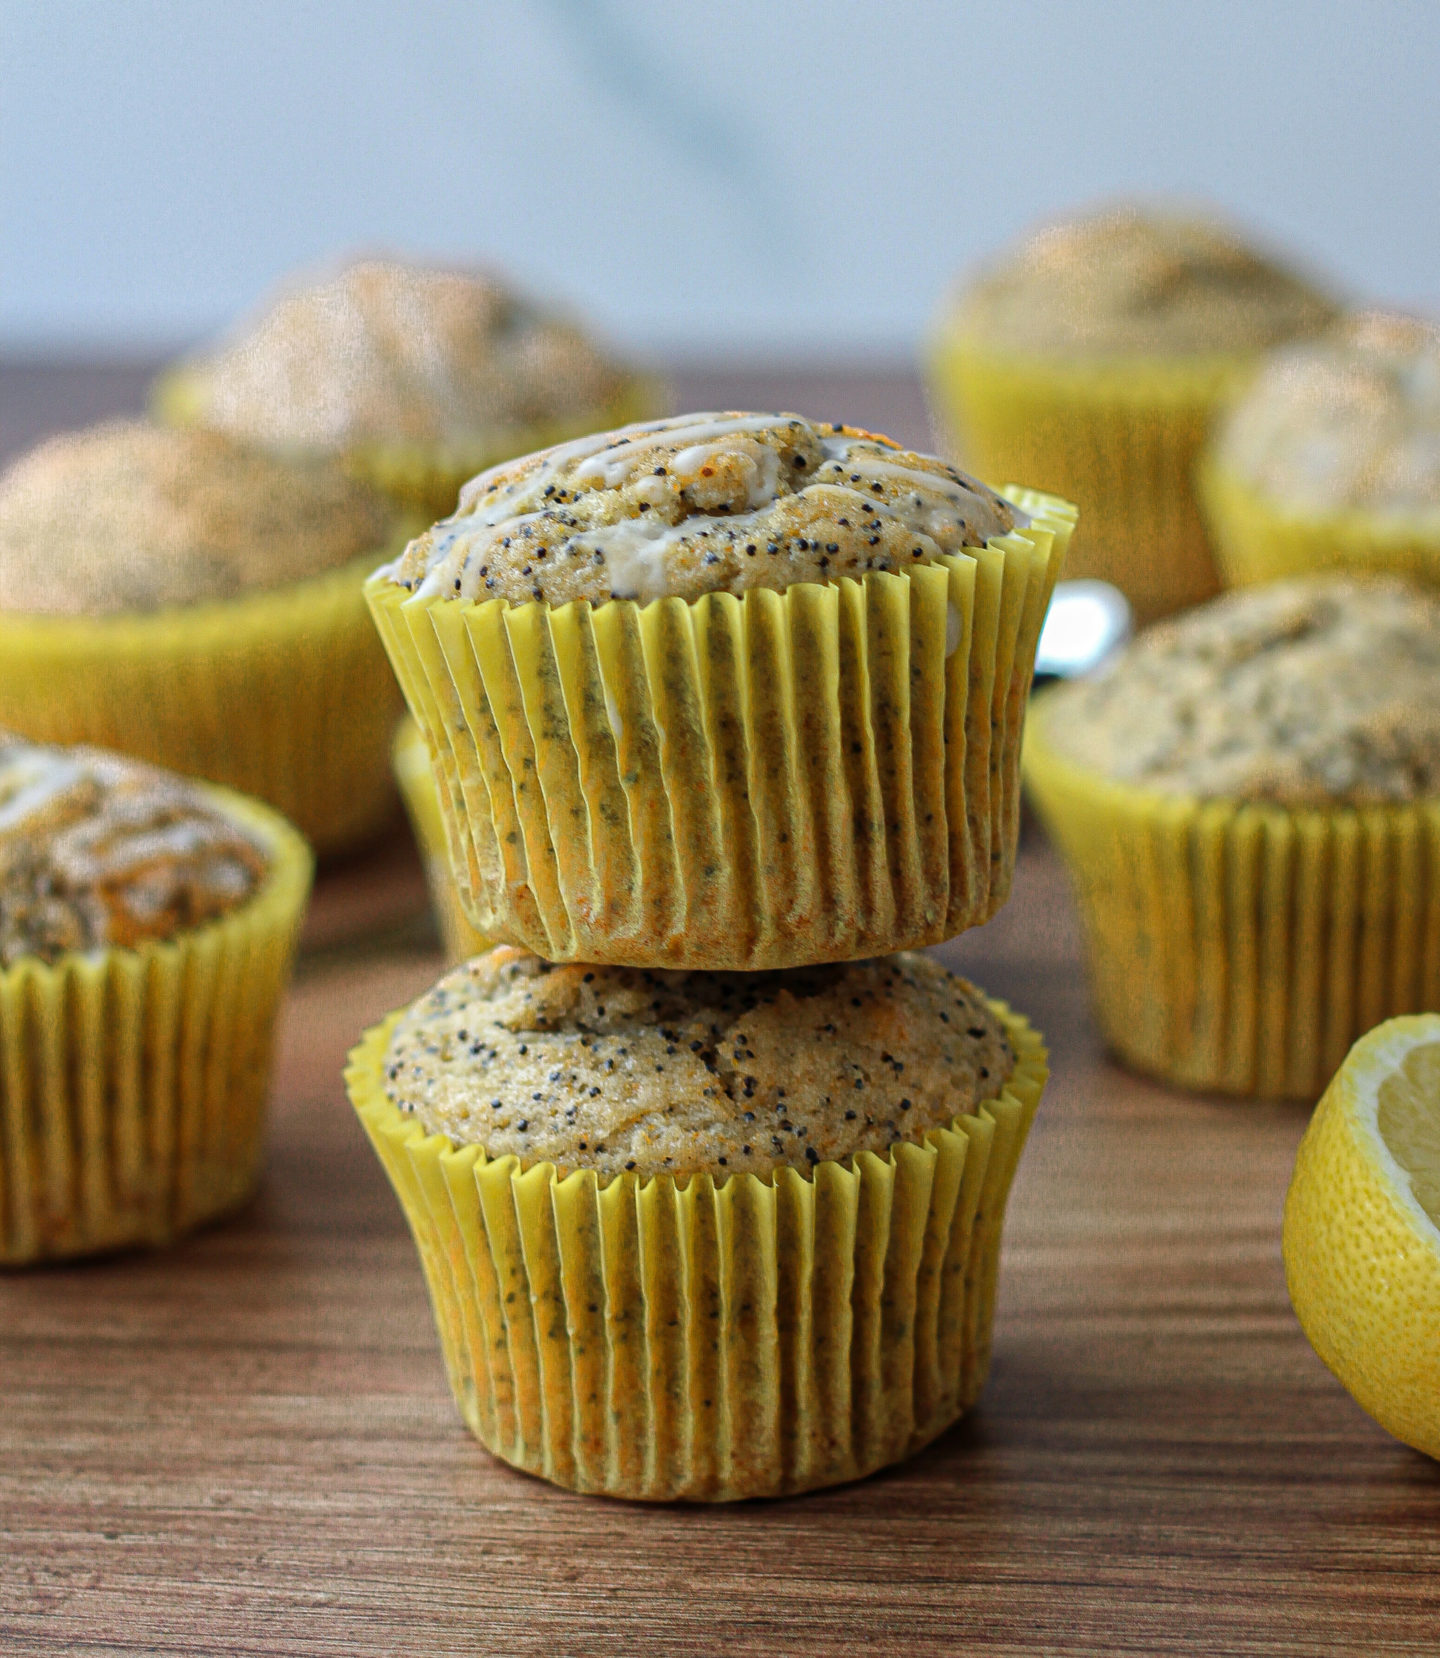 small tower of two lemon poppy seed muffins